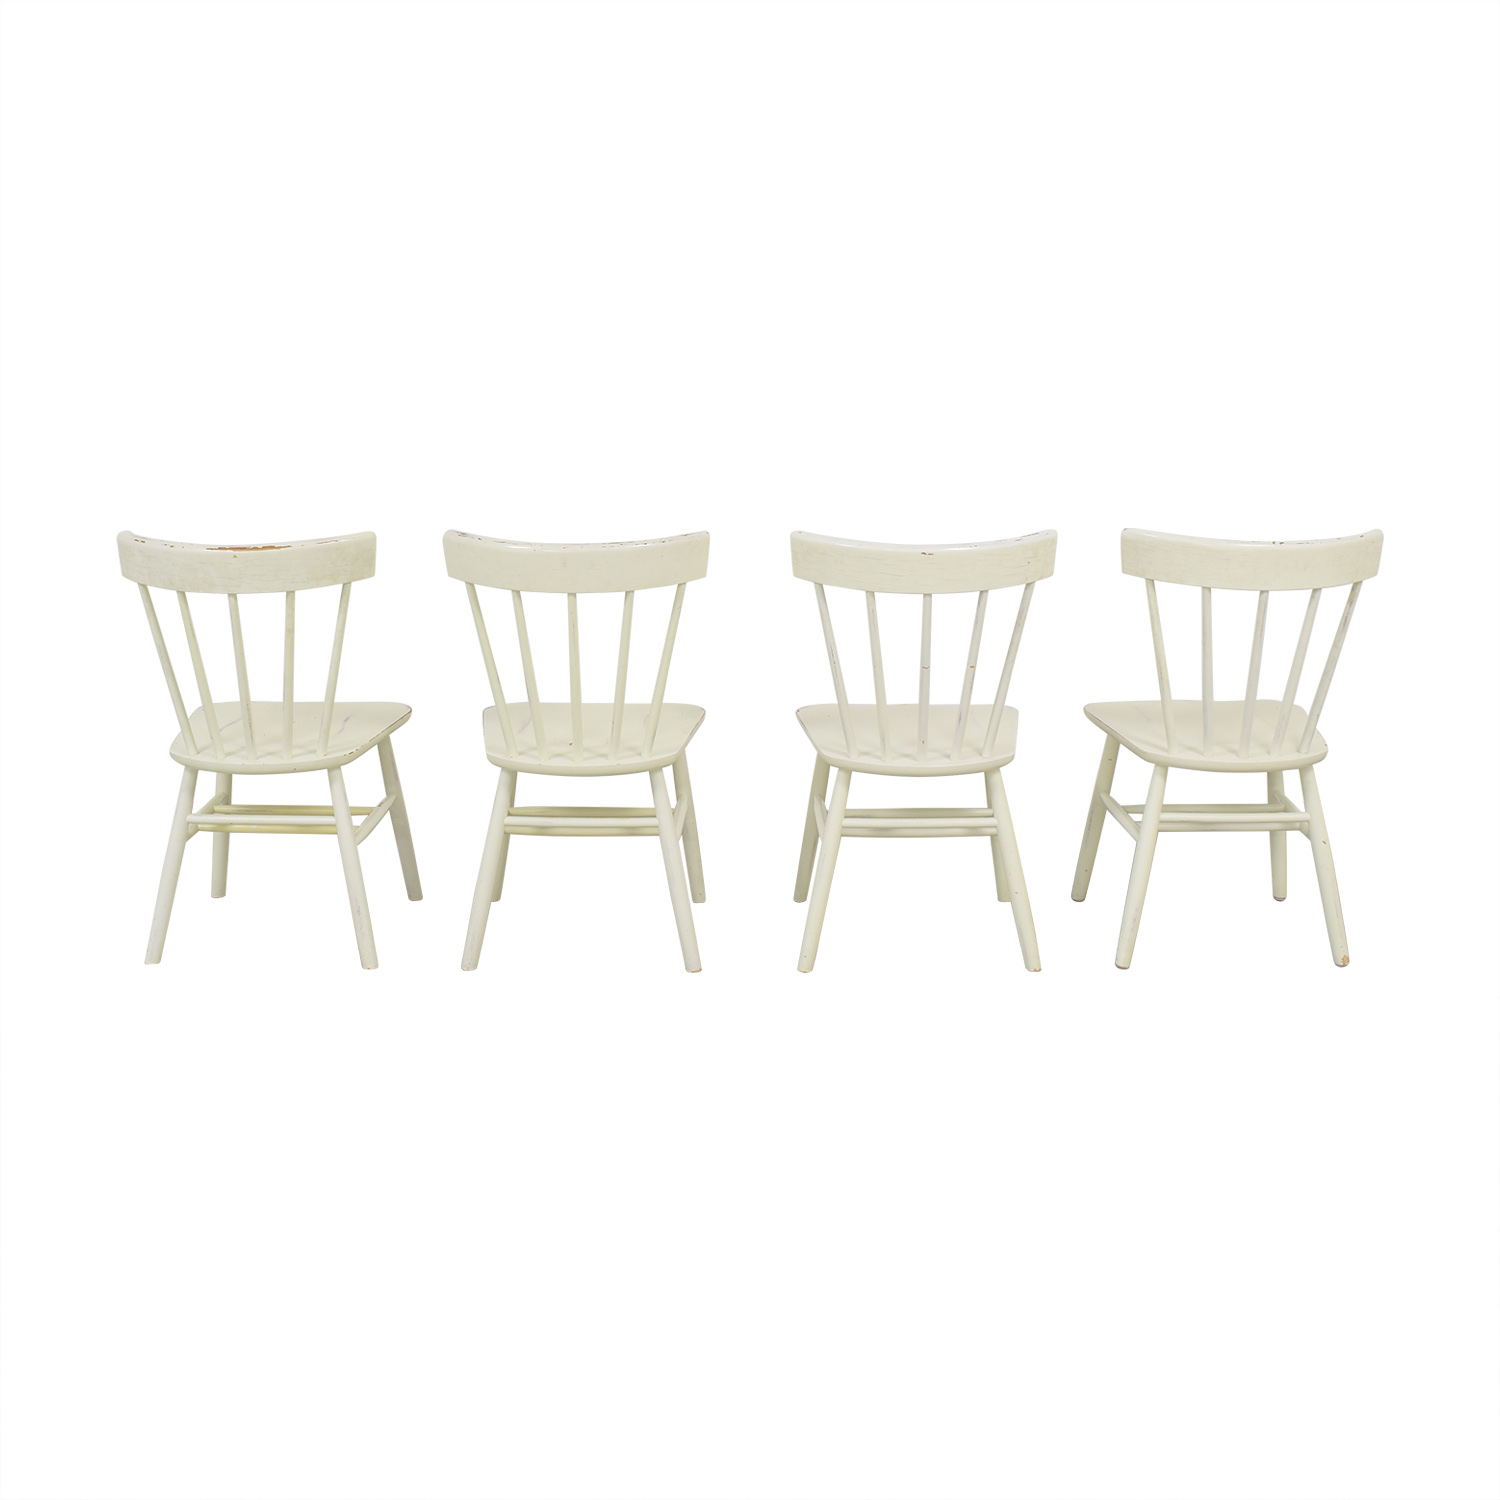 Pottery Barn Pottery Barn Rustic Dining Chairs off white